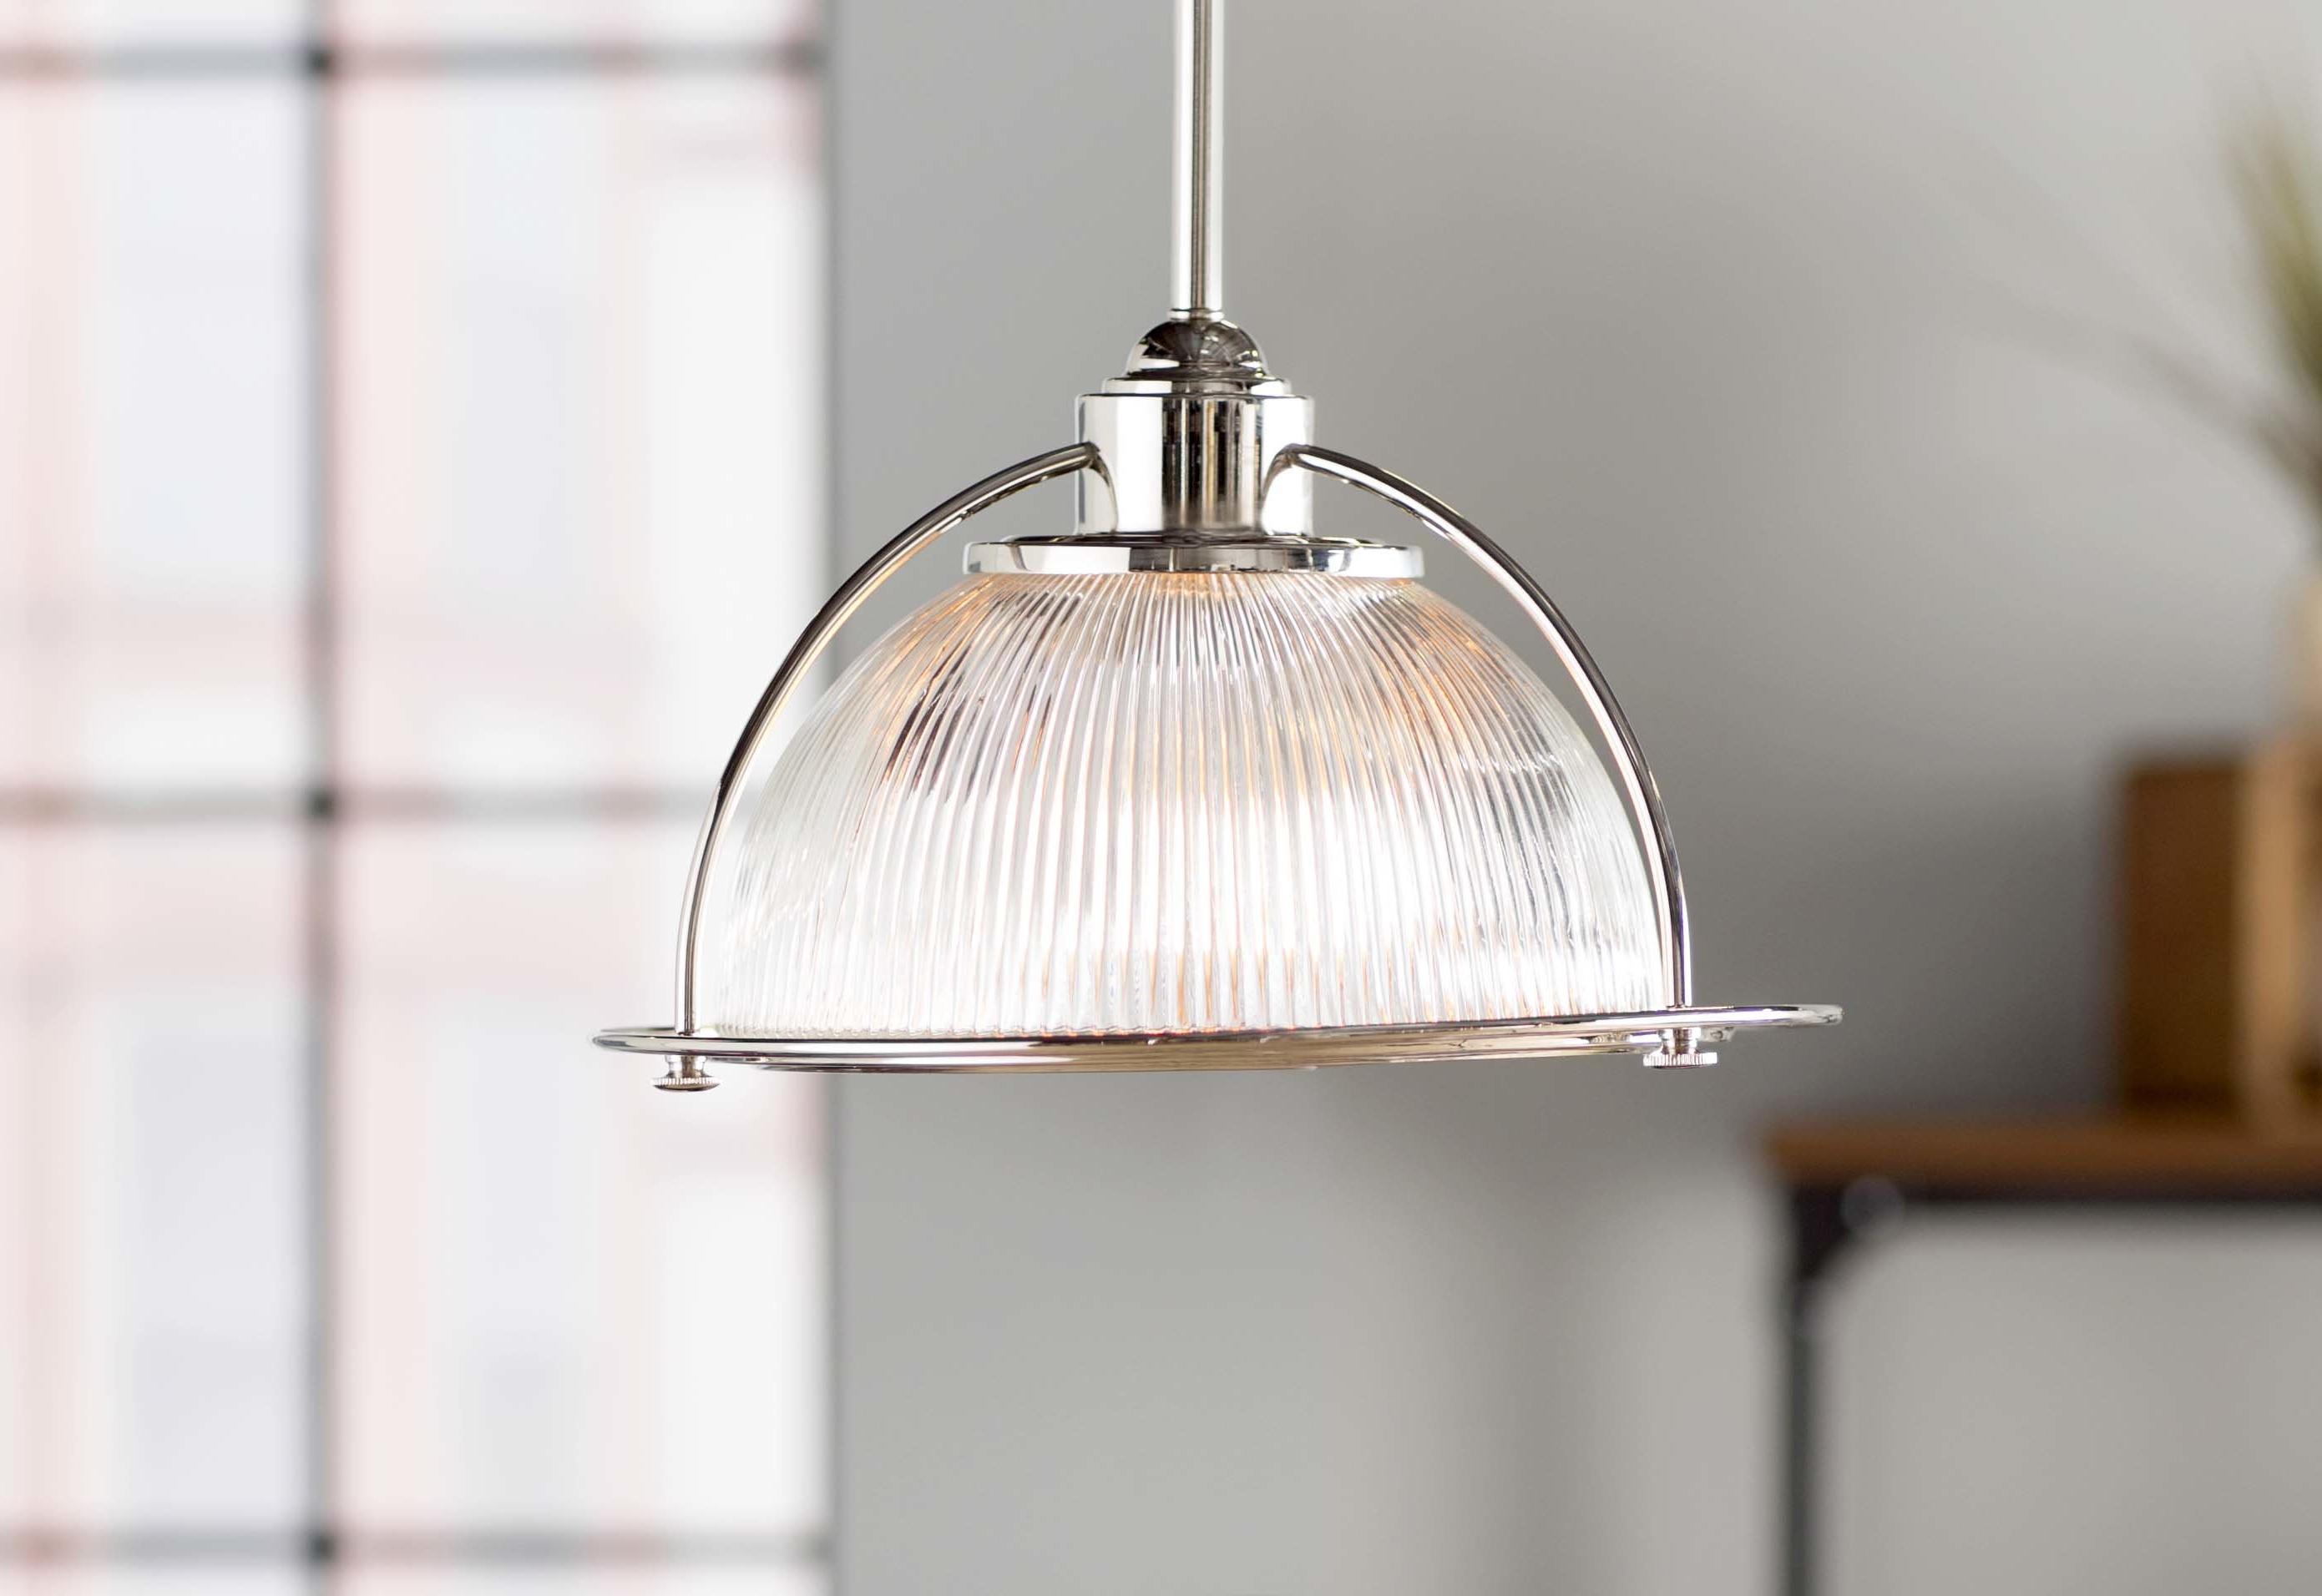 Well Liked Granville 2 Light Single Dome Pendants Regarding Brickford 1 Light Single Dome Pendant (View 19 of 20)